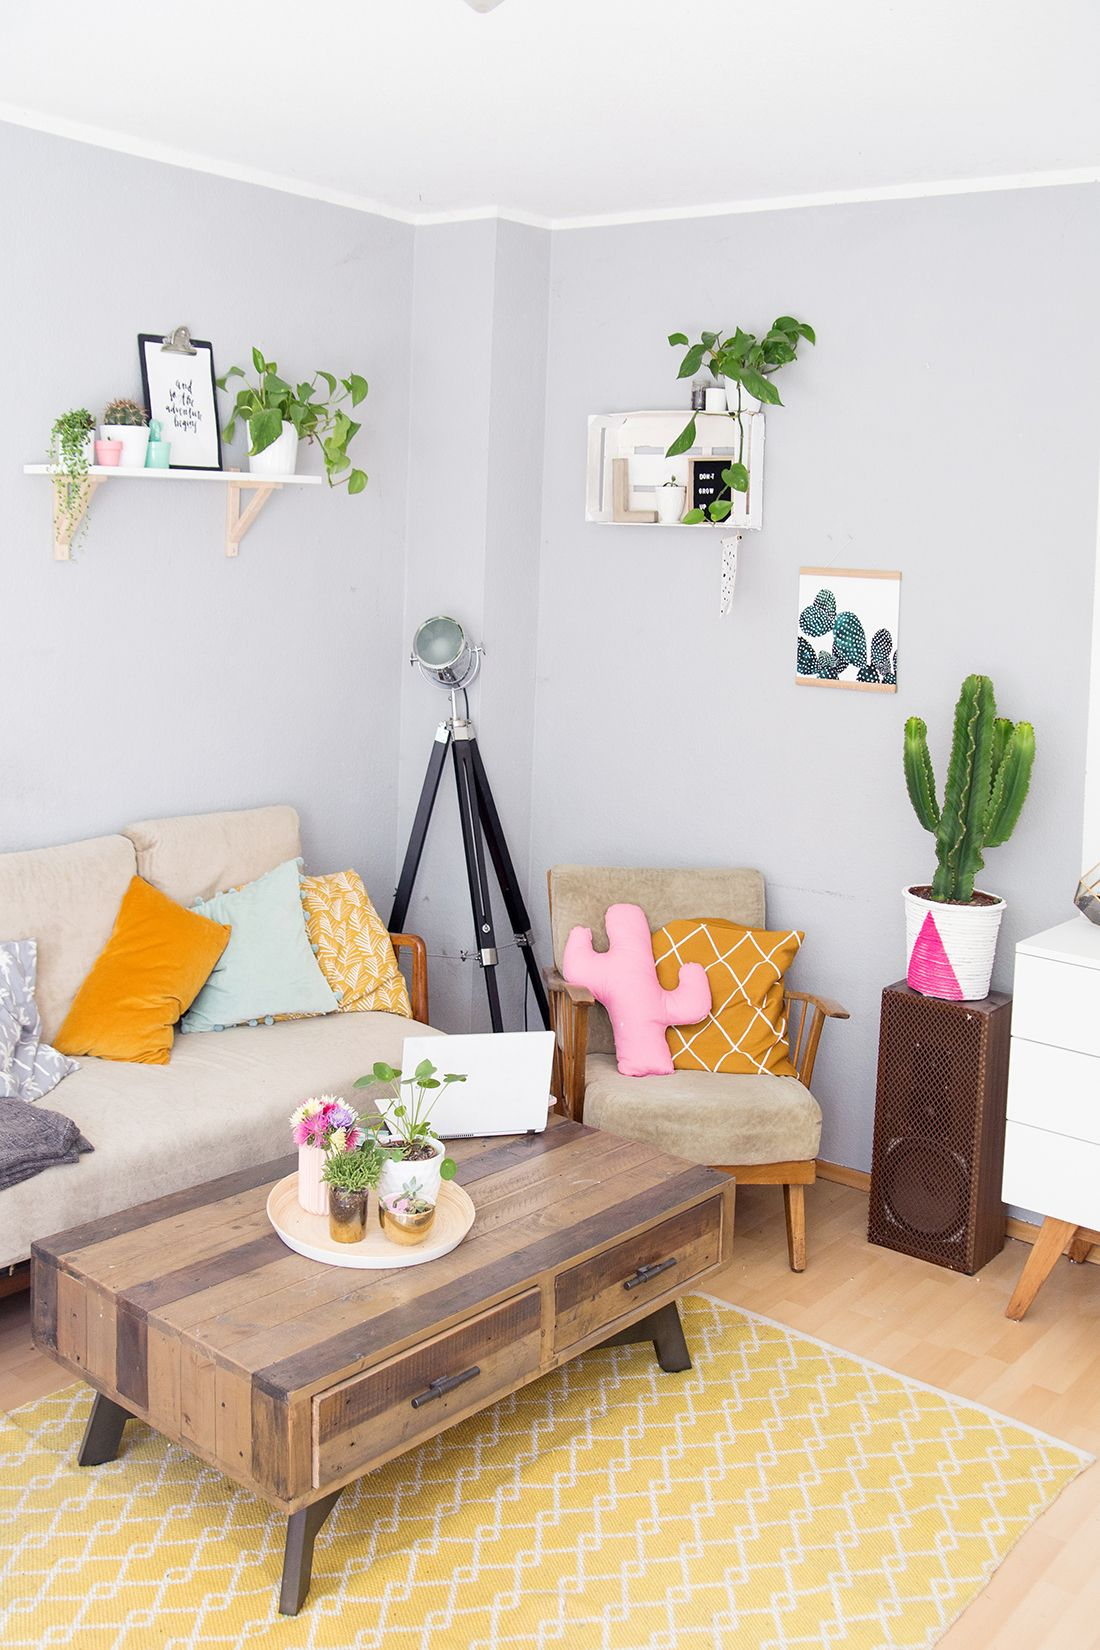 wohnzimmer umstyling mit viel diy deko in 2018 interior wohnzimmer pinterest. Black Bedroom Furniture Sets. Home Design Ideas